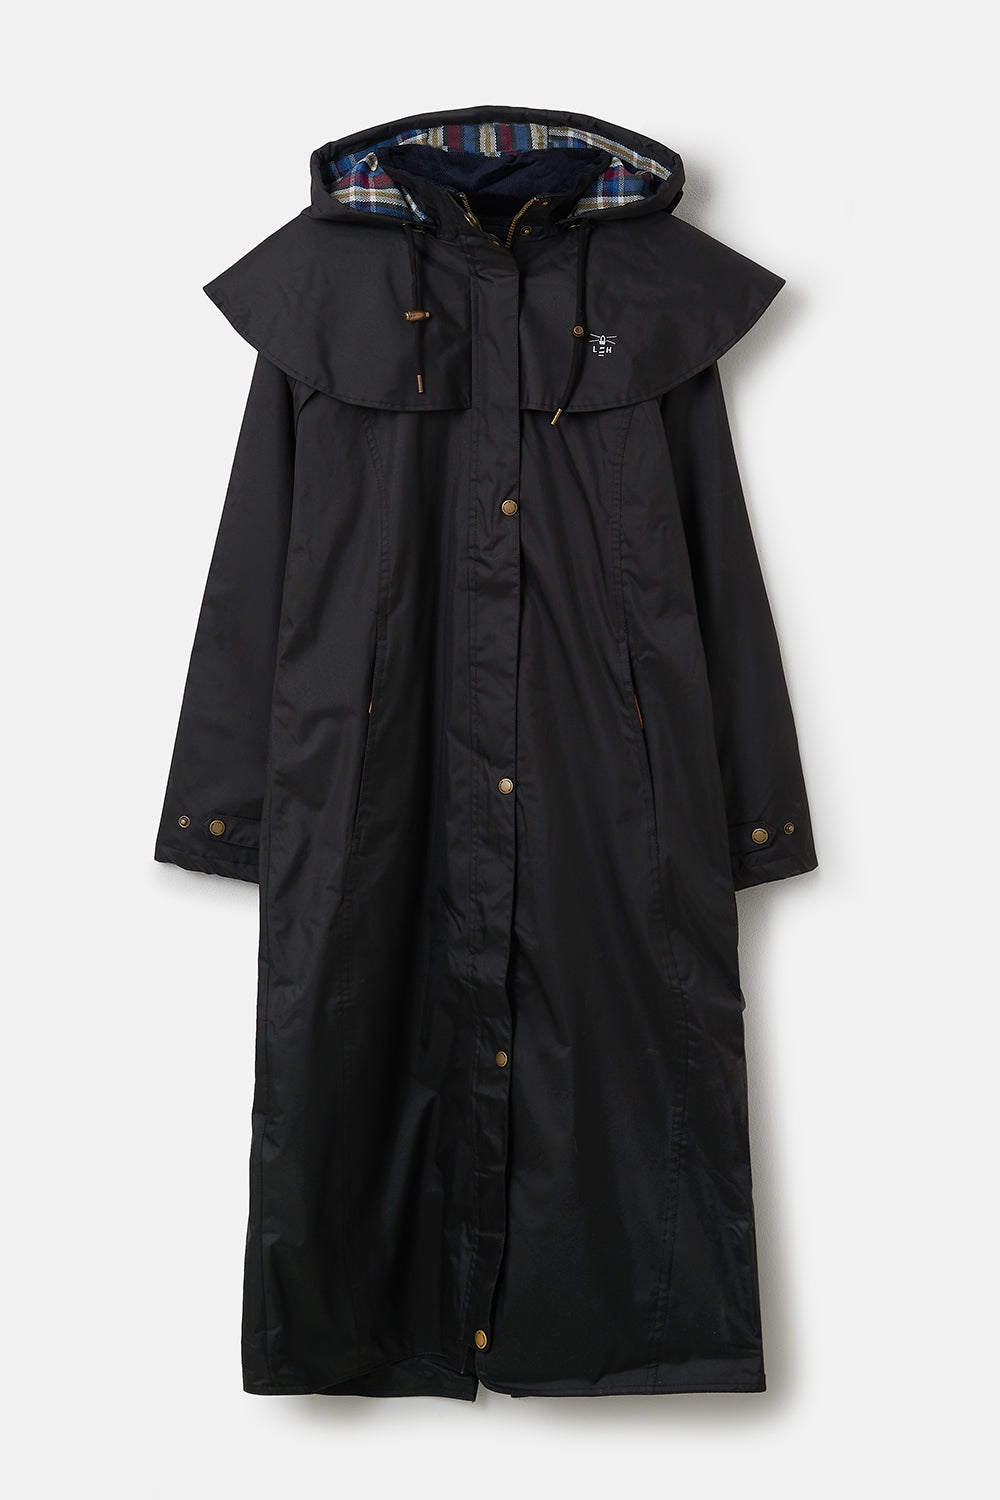 Lighthouse Outback Womens Full Length Waterproof Raincoat - Black